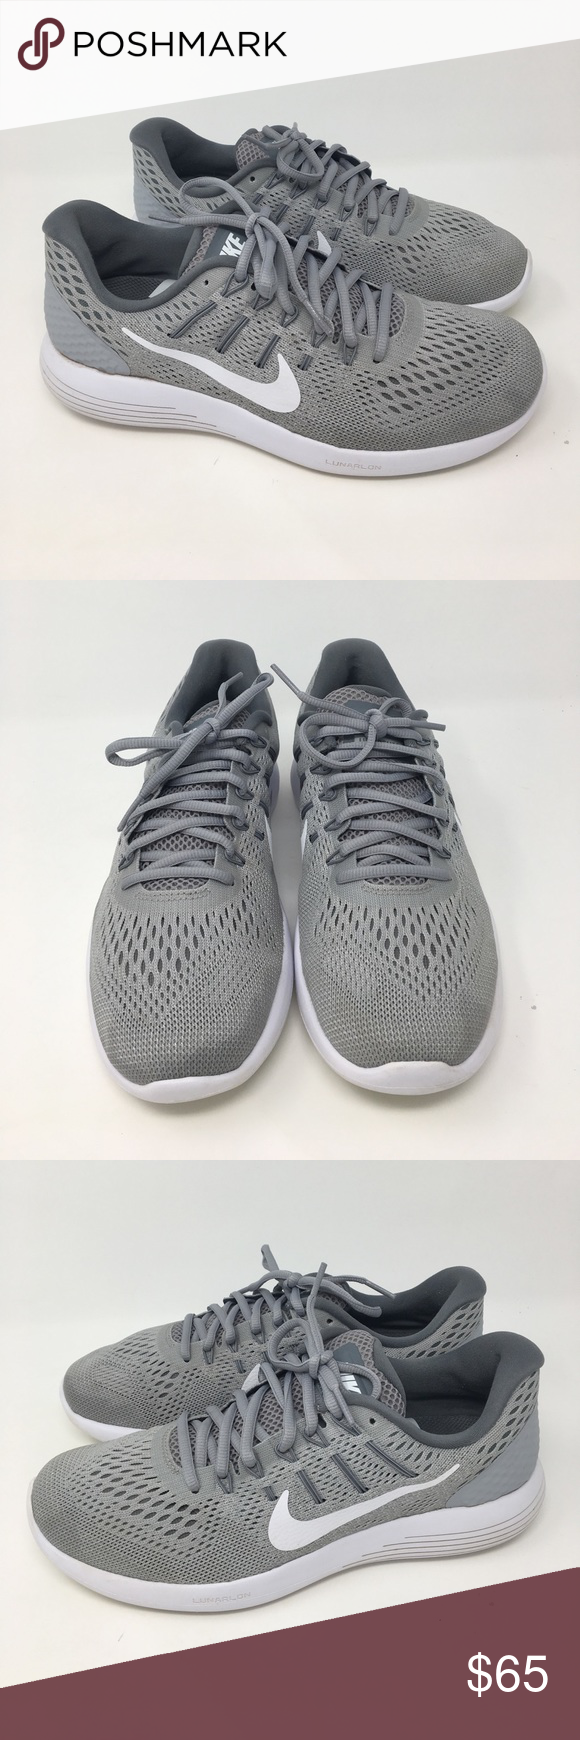 020161a625f Women s Nike Lunarglide 8 Women s Nike Lunarglide 8. Size 9. Worn maybe 1-2  times. Great condition. NO TRADES! Nike Shoes Athletic Shoes